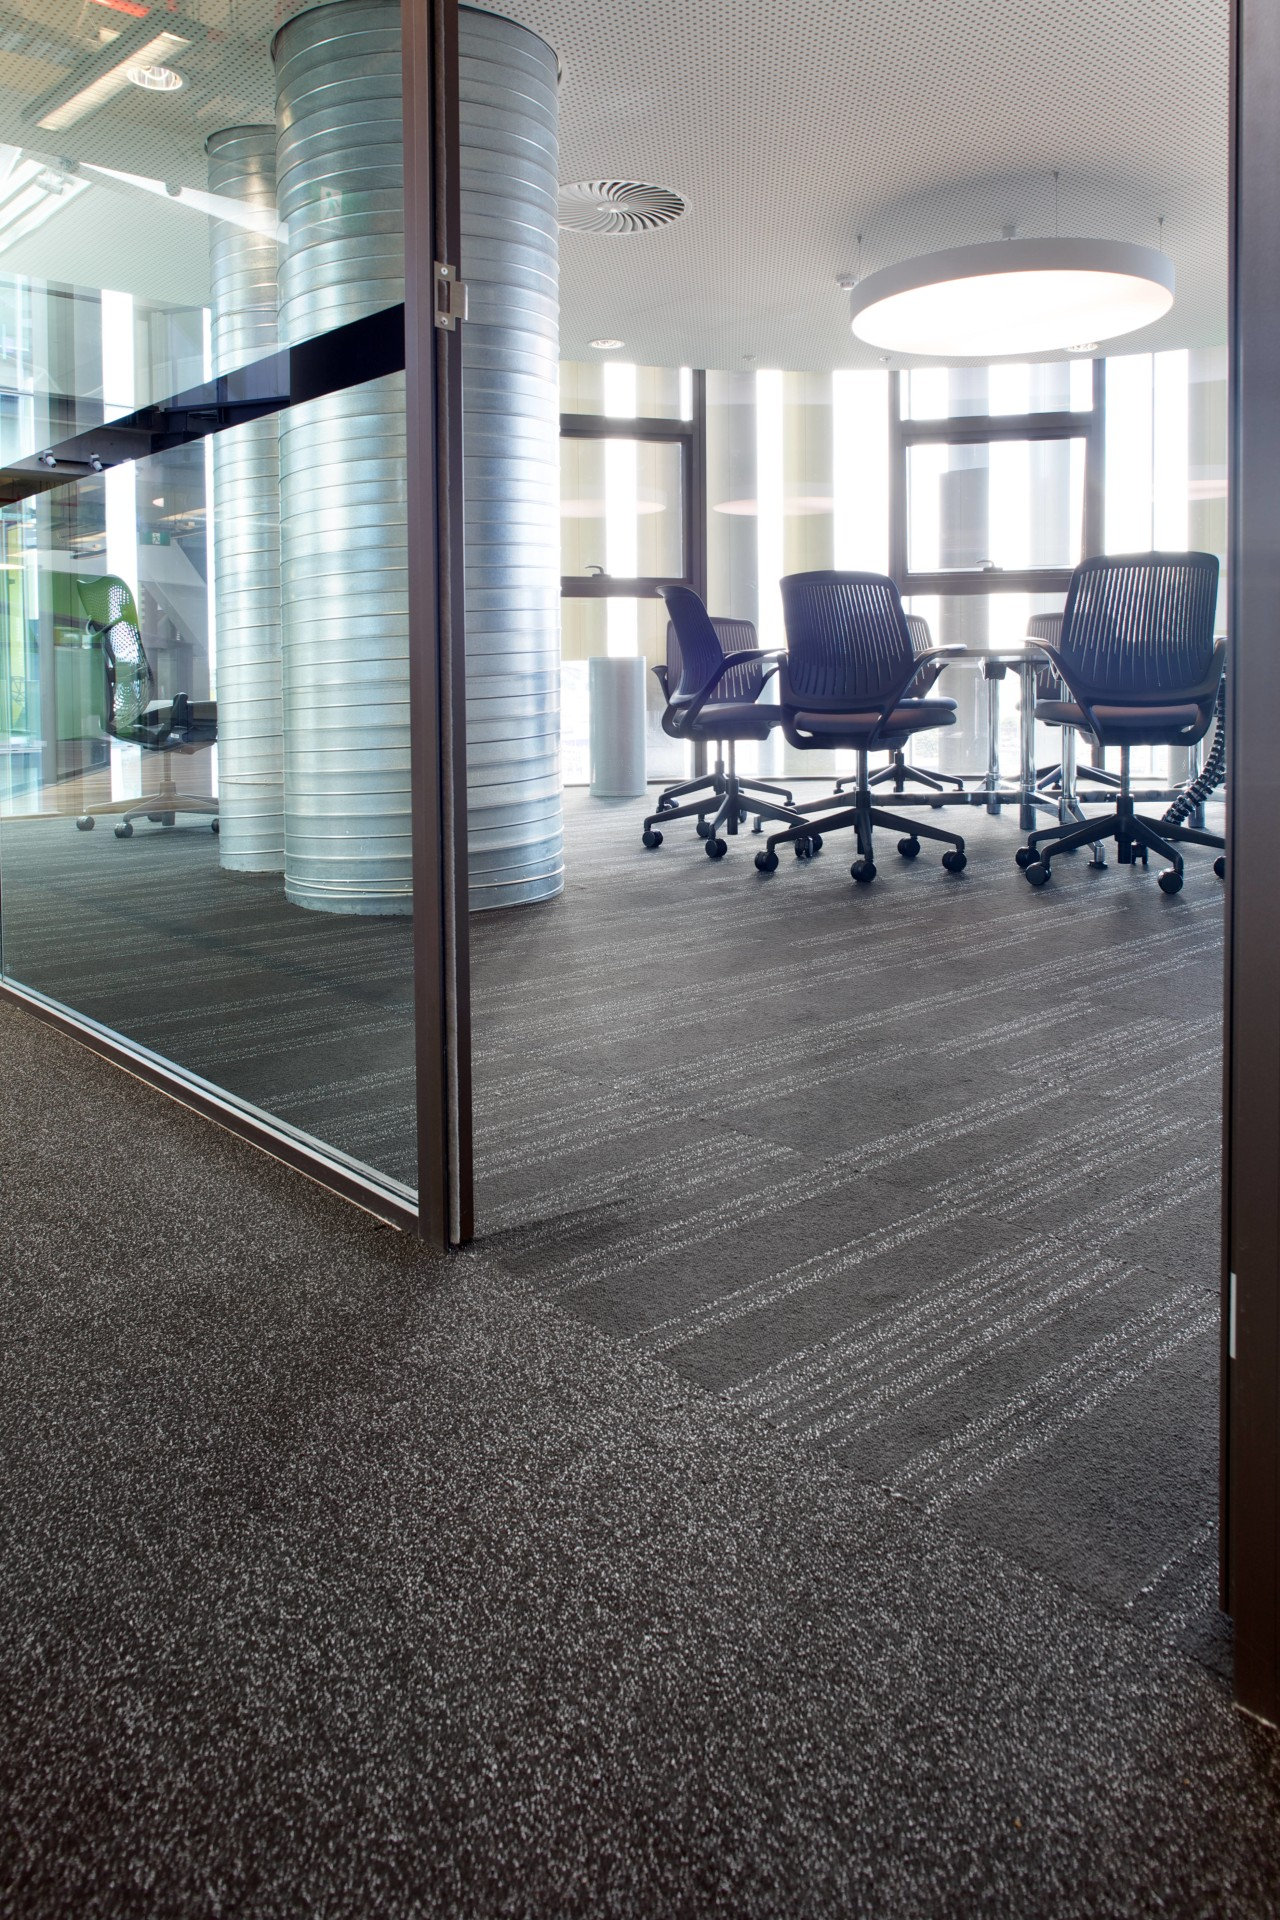 Godfrey Hirst carpet tiles feature in the ASB architecture, floor, flooring, lobby, structure, tile, gray, black